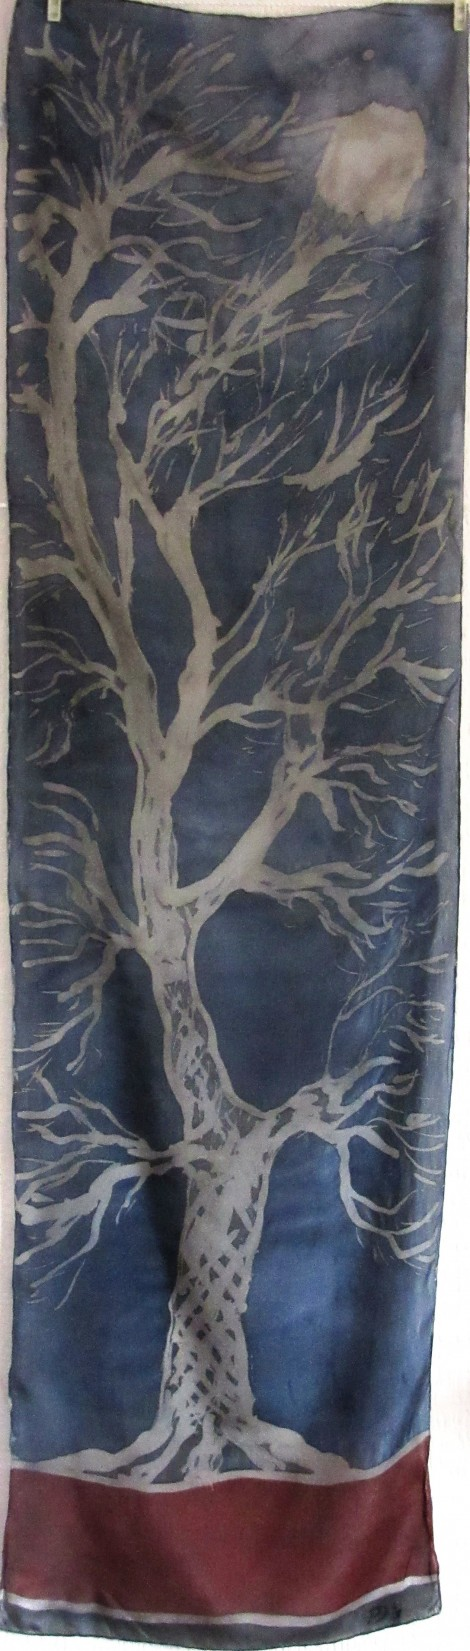 Moon in the Elm Tree crepe de Chine batik silk scarf 150x40cm